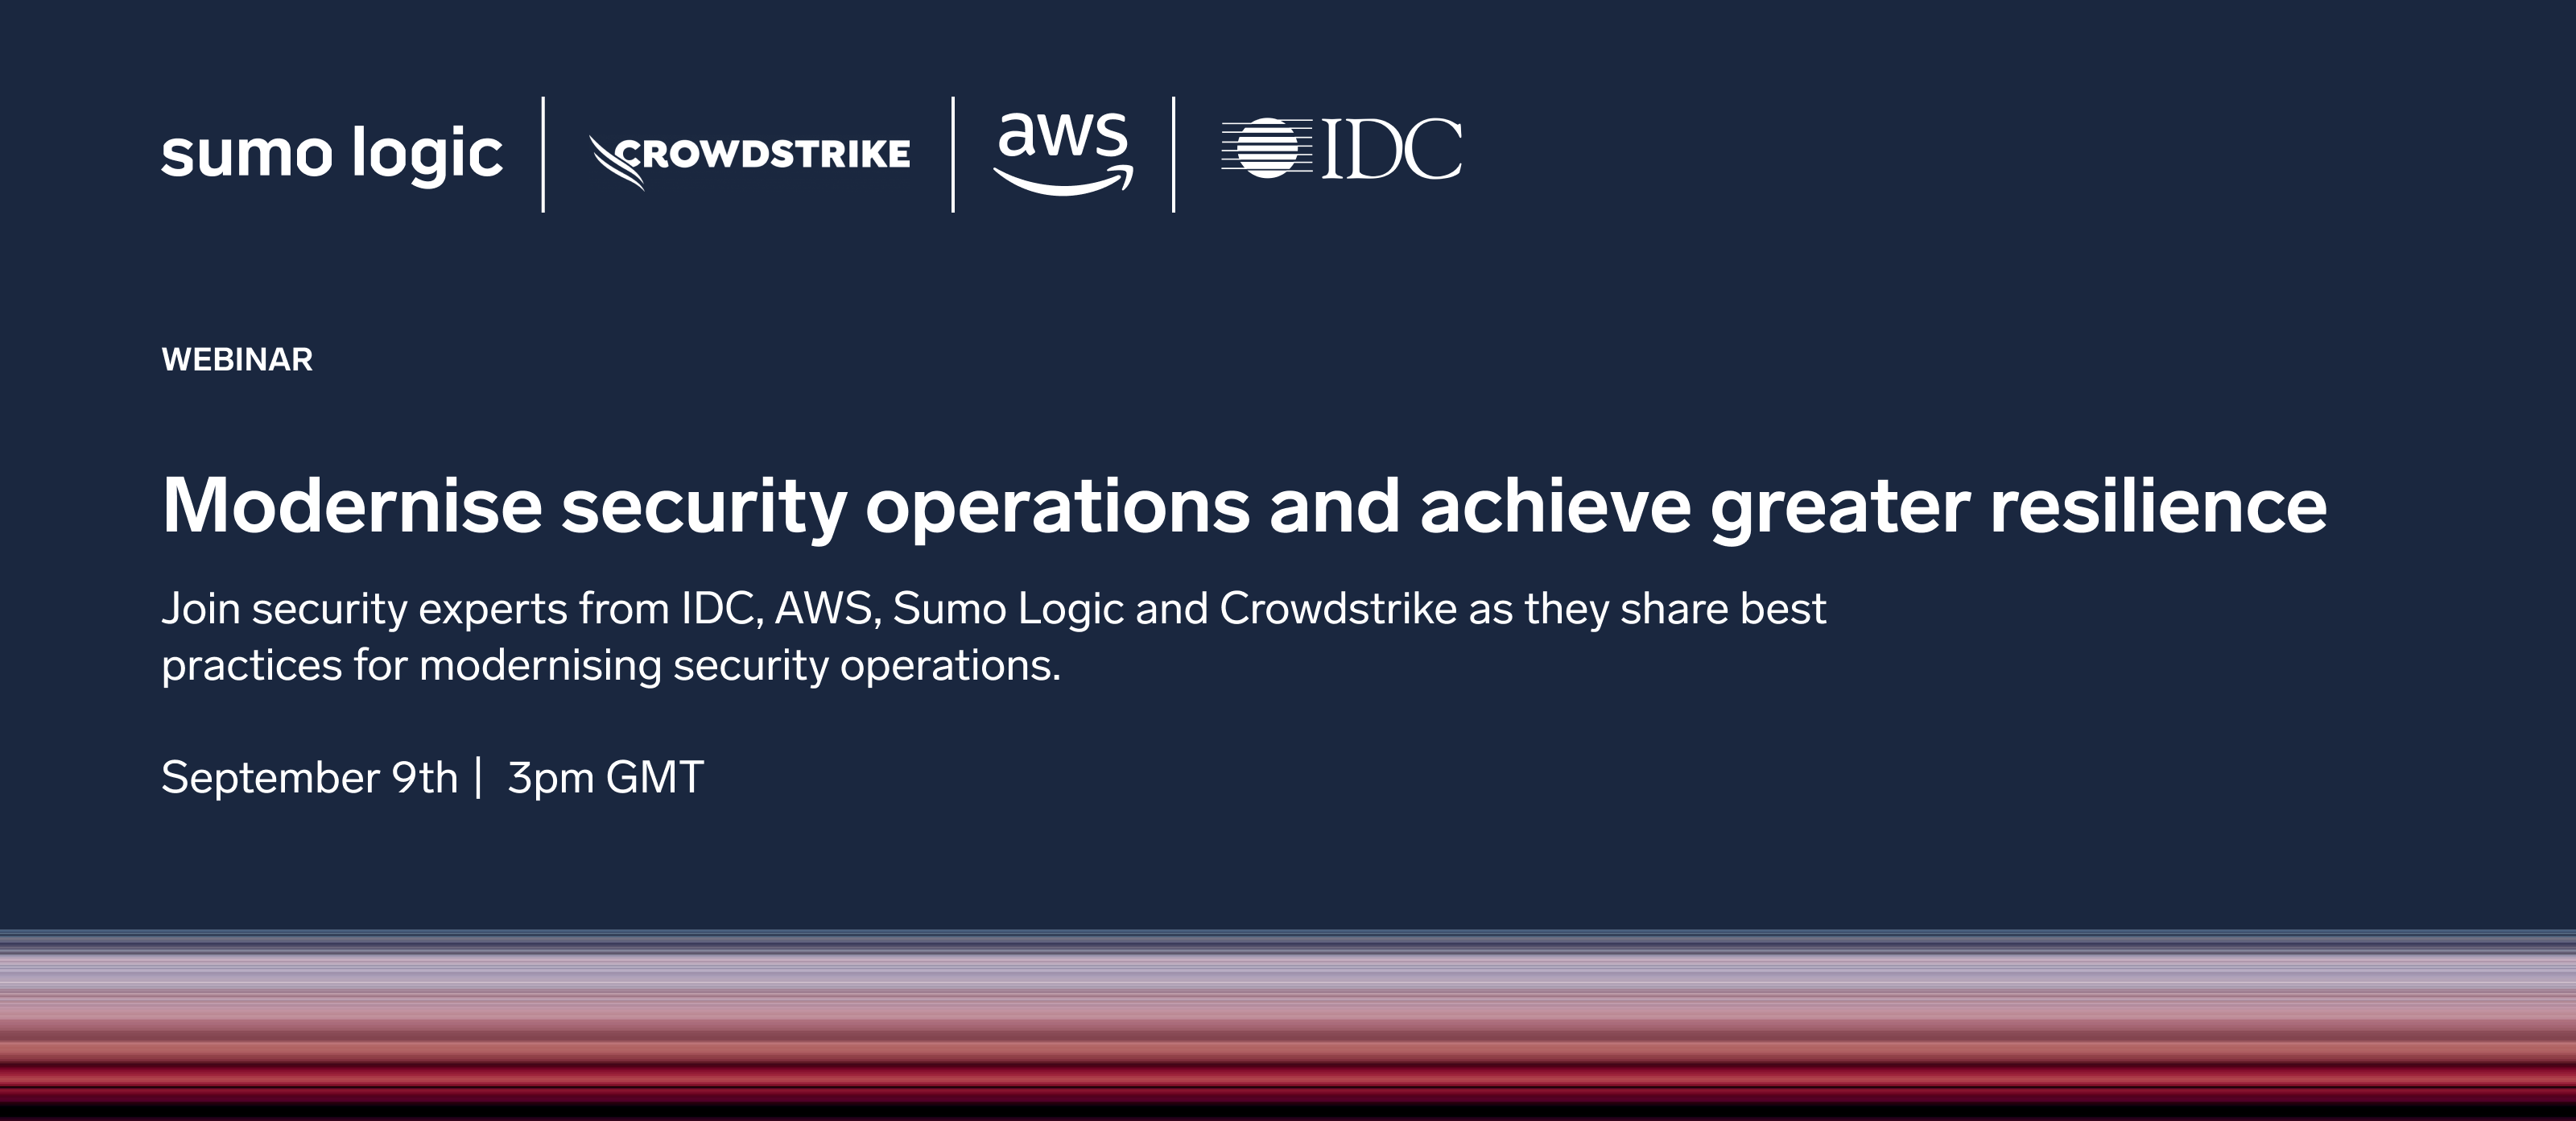 Modernise Your Security Operations and Achieve Greater Resilience